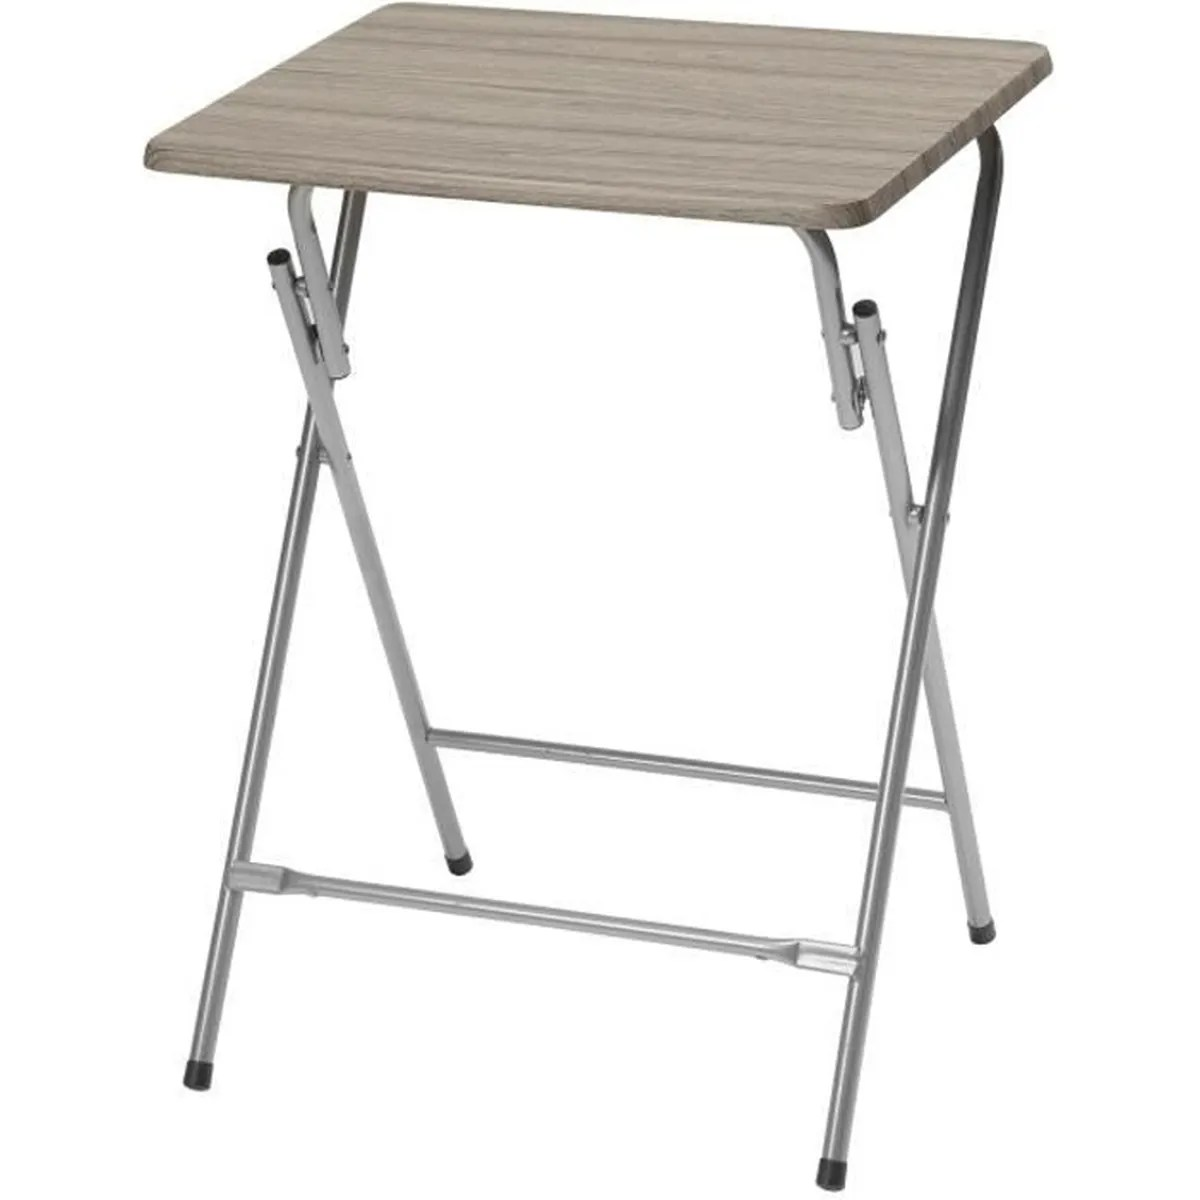 Table TV Pliante Grey Bois Achat Vente Table D